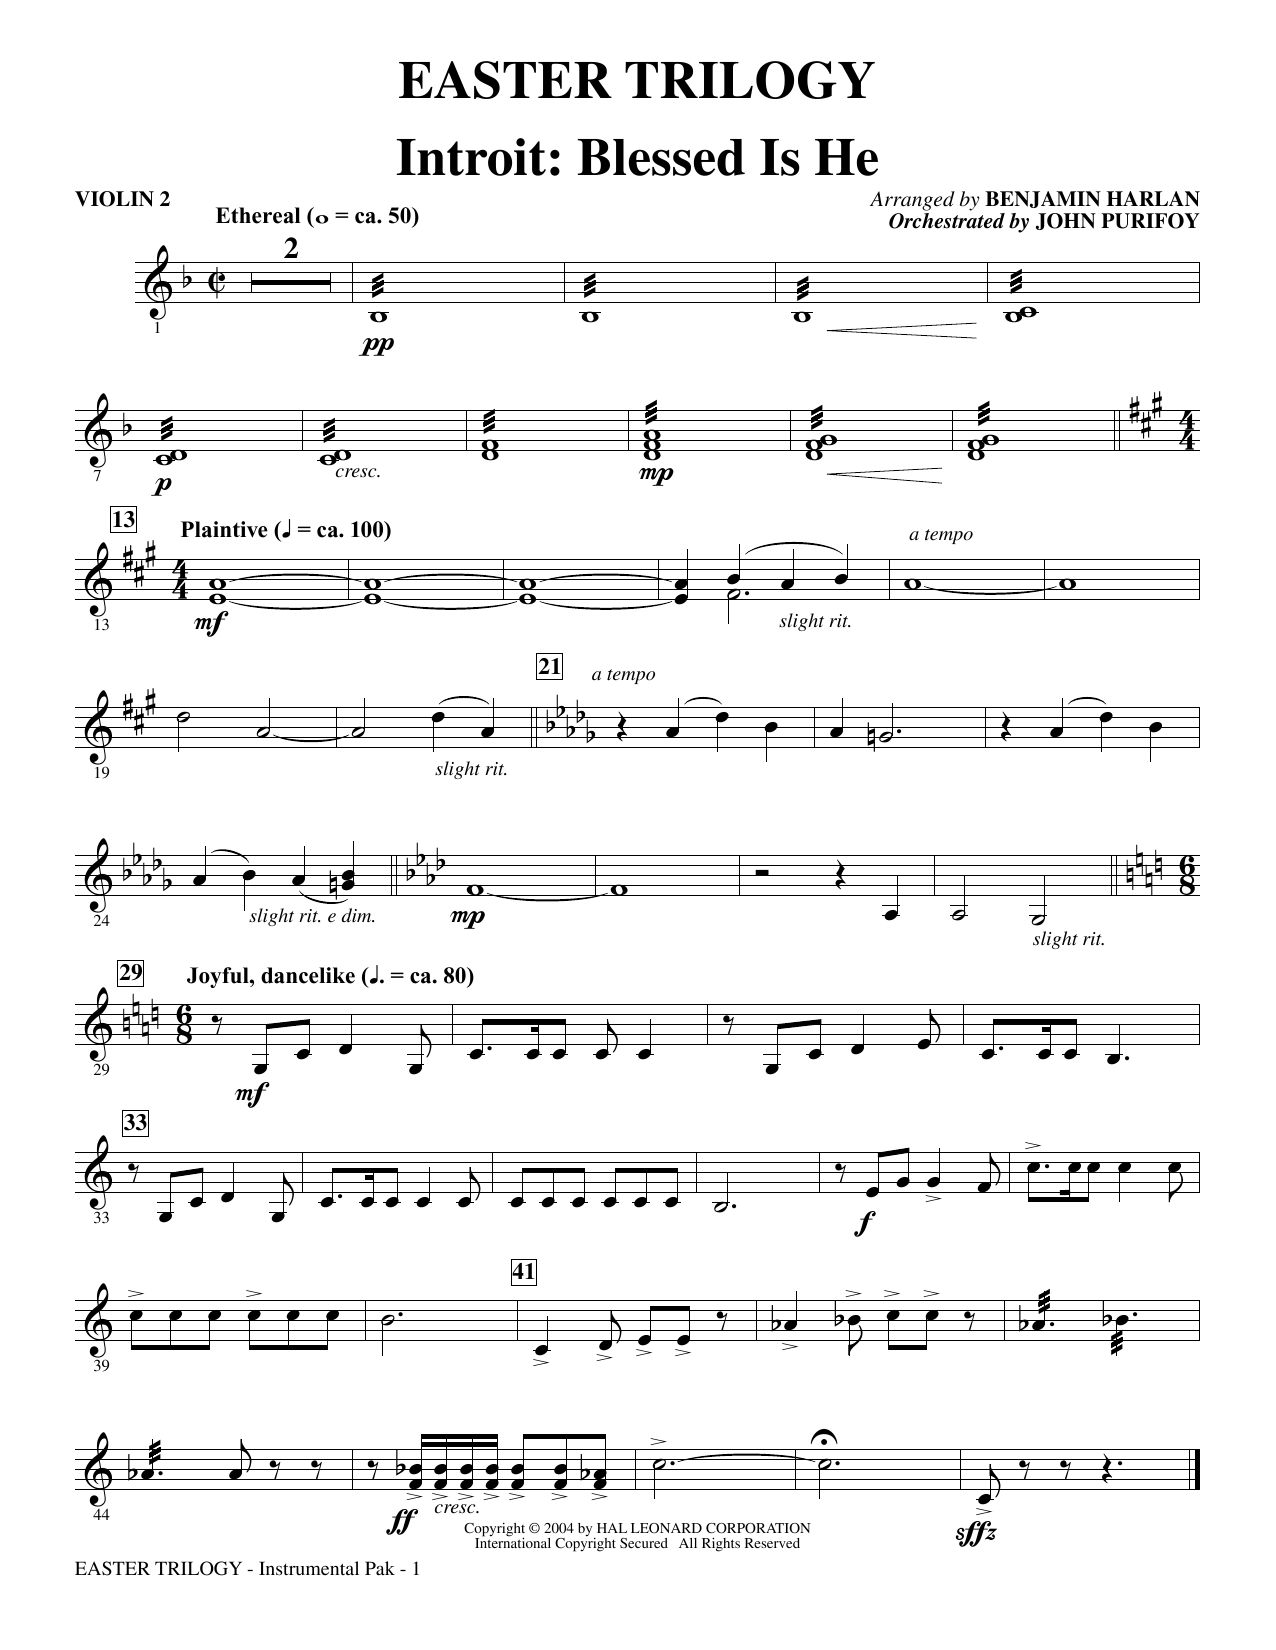 Easter Trilogy: A Cantata in Three Suites (Full Orchestra) - Violin 2 Sheet Music